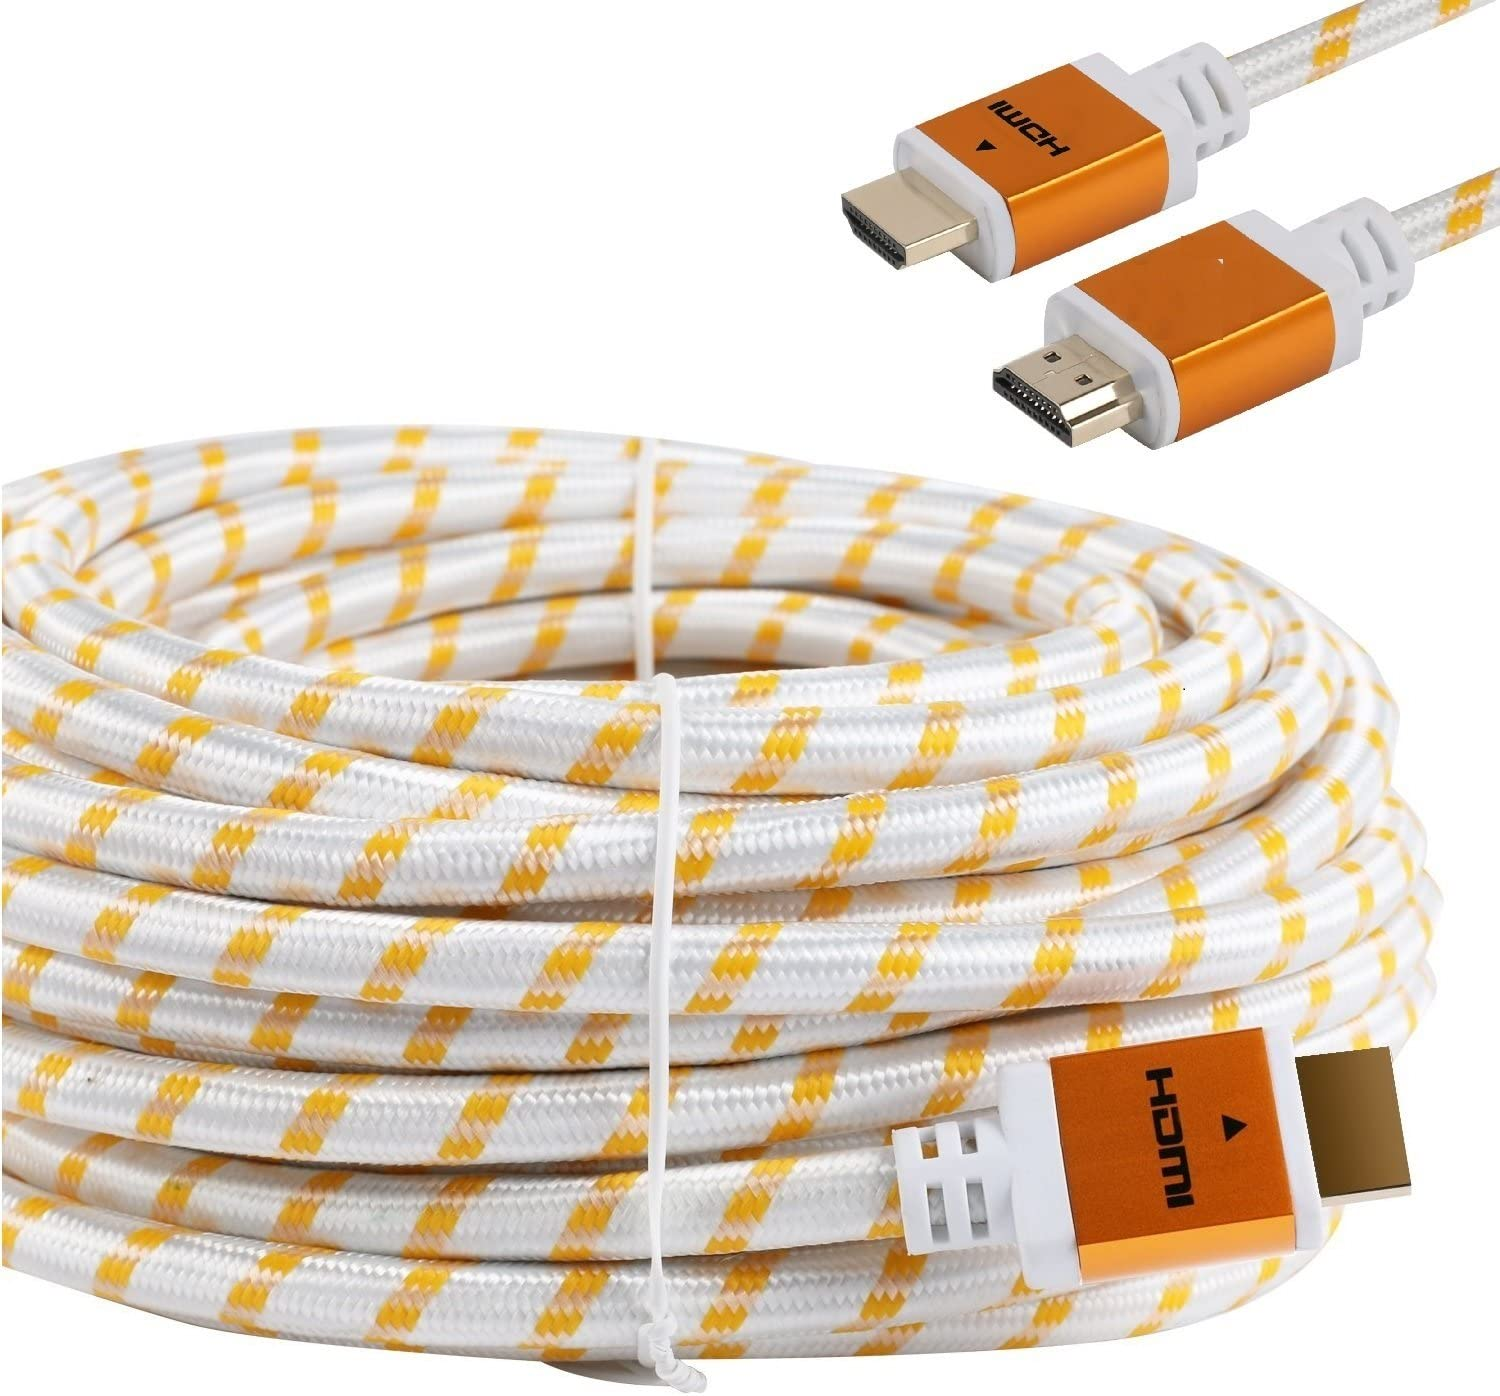 Gold Plated Connectors CableVantage HDMI Braided for PS4 HDMI Cable 18Gbps Premium Braided Cord 50FT Video HD 1080p,3D PlayStation PC Computer Monitor White Ethernet,Audio Return